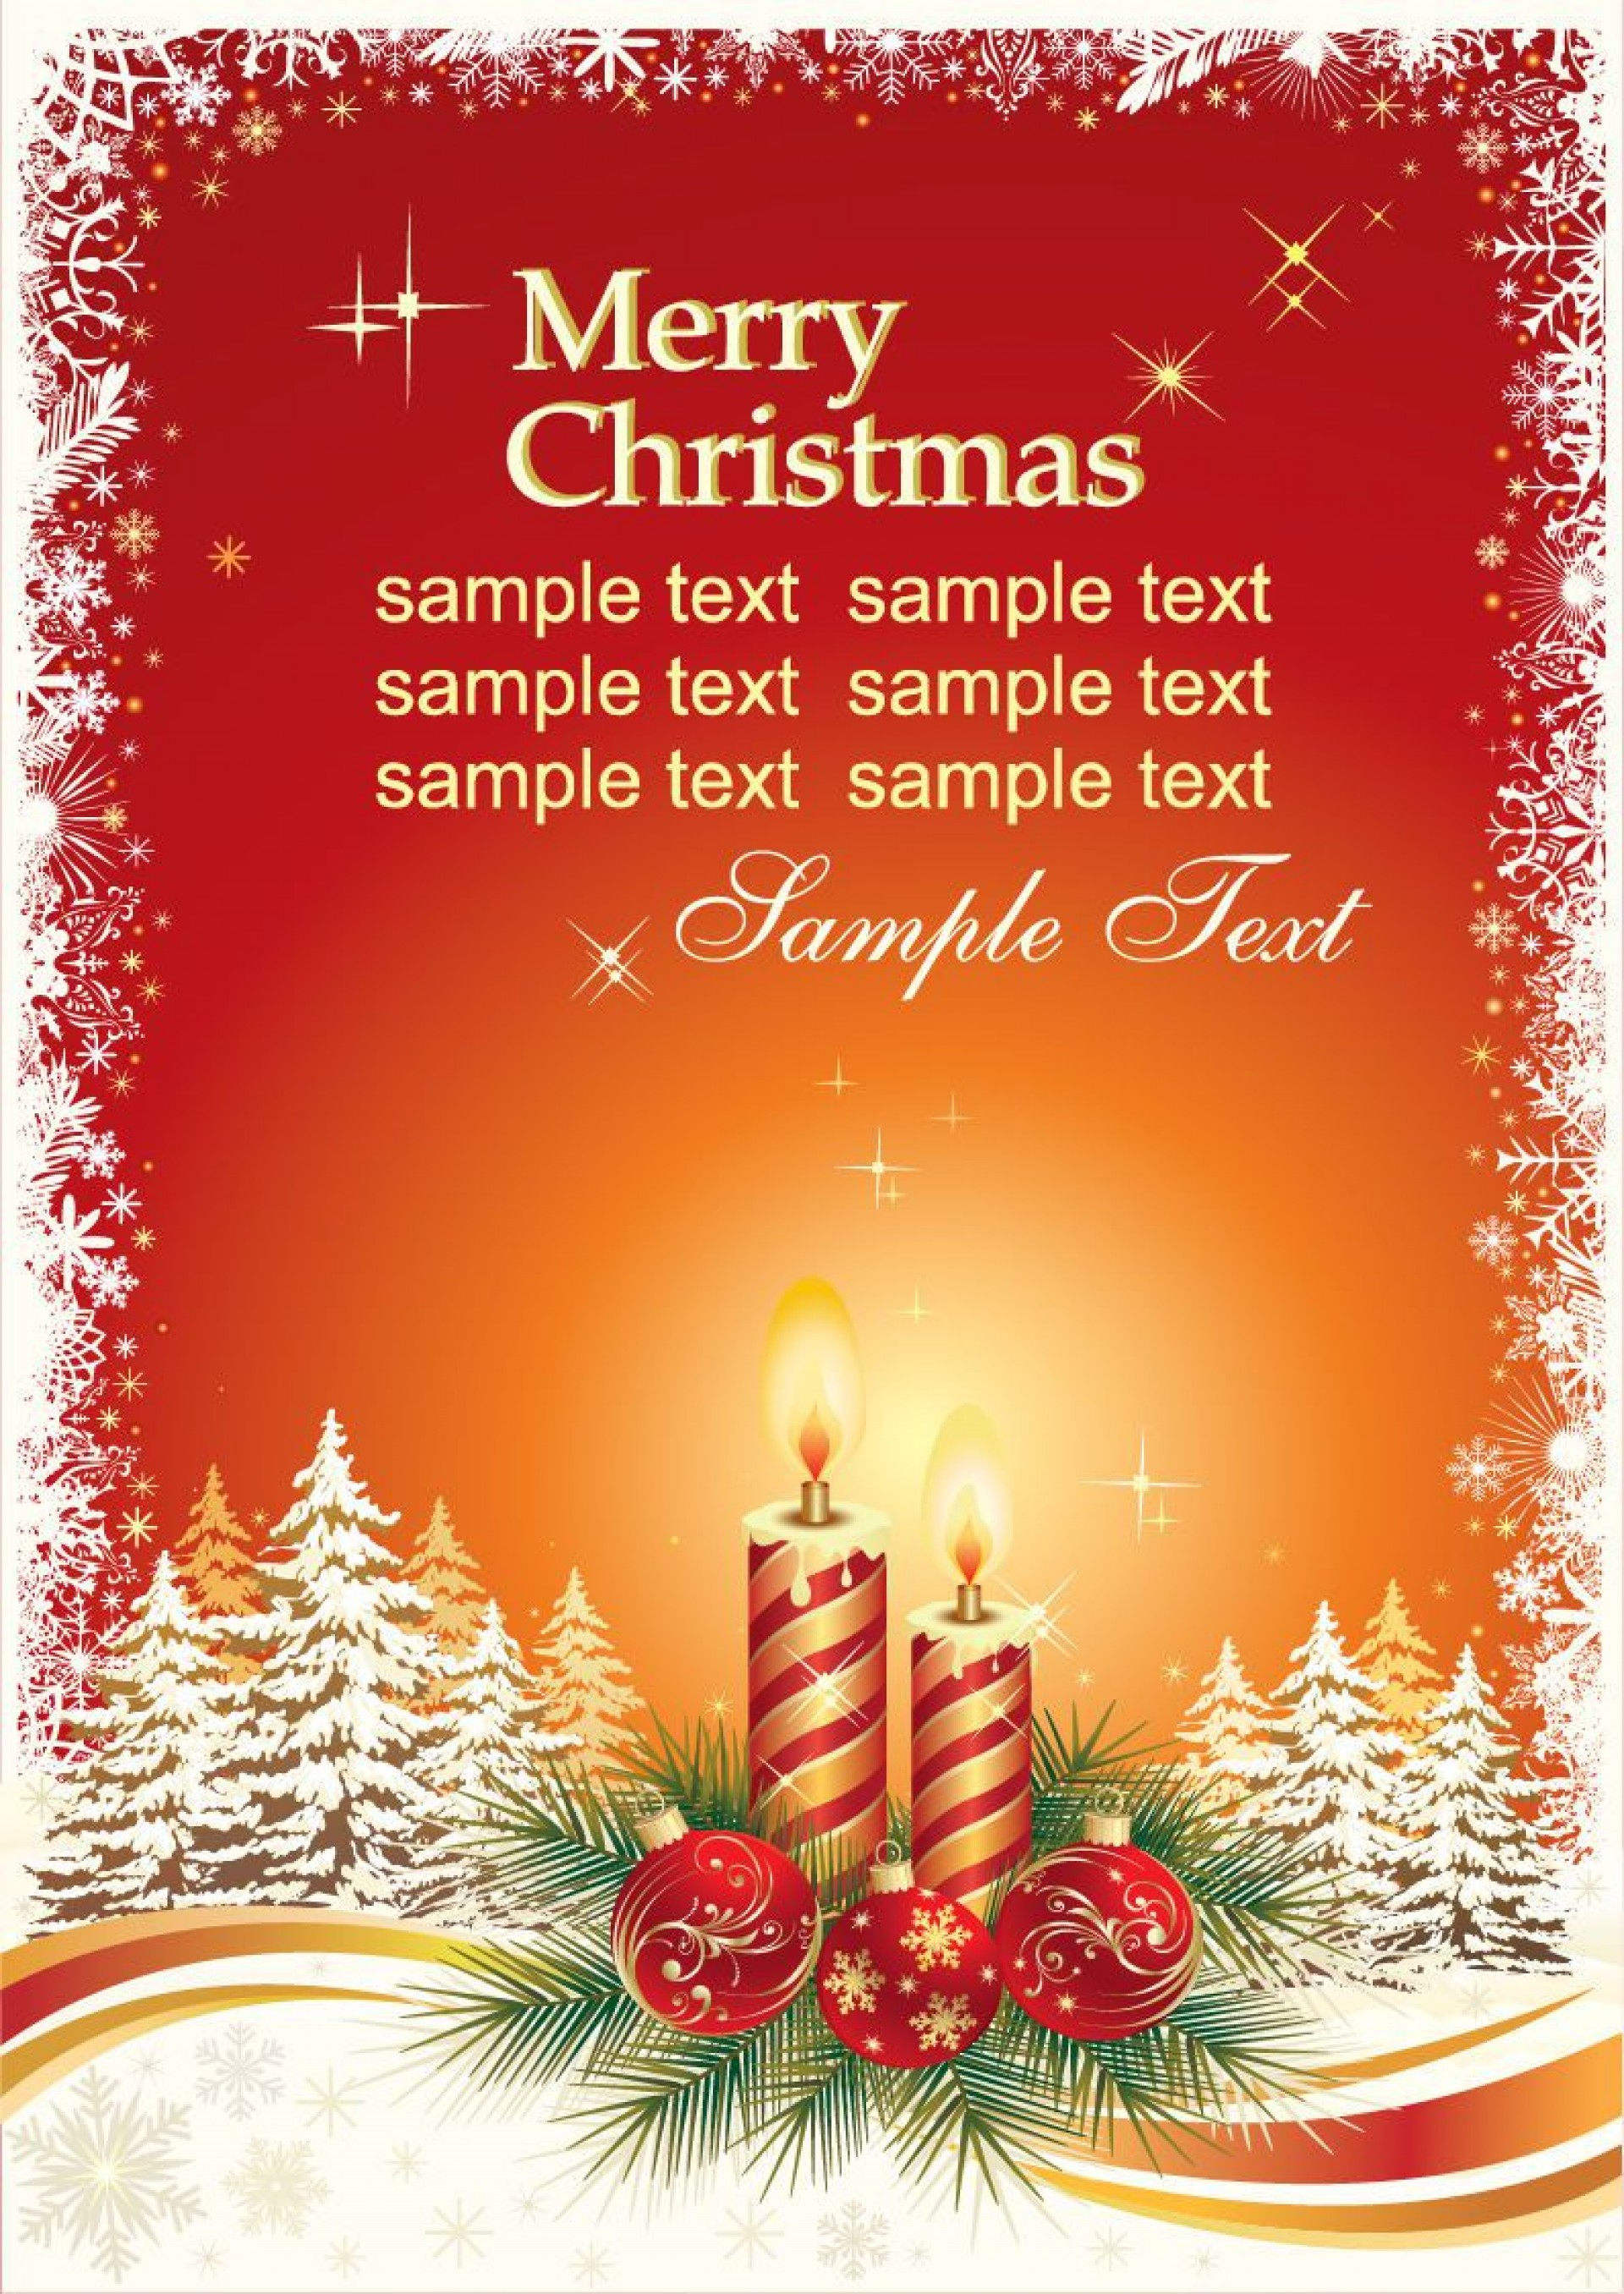 006 Staggering Christma Card Template Free Download Highest Clarity  Downloads Photoshop Photo Editable1920